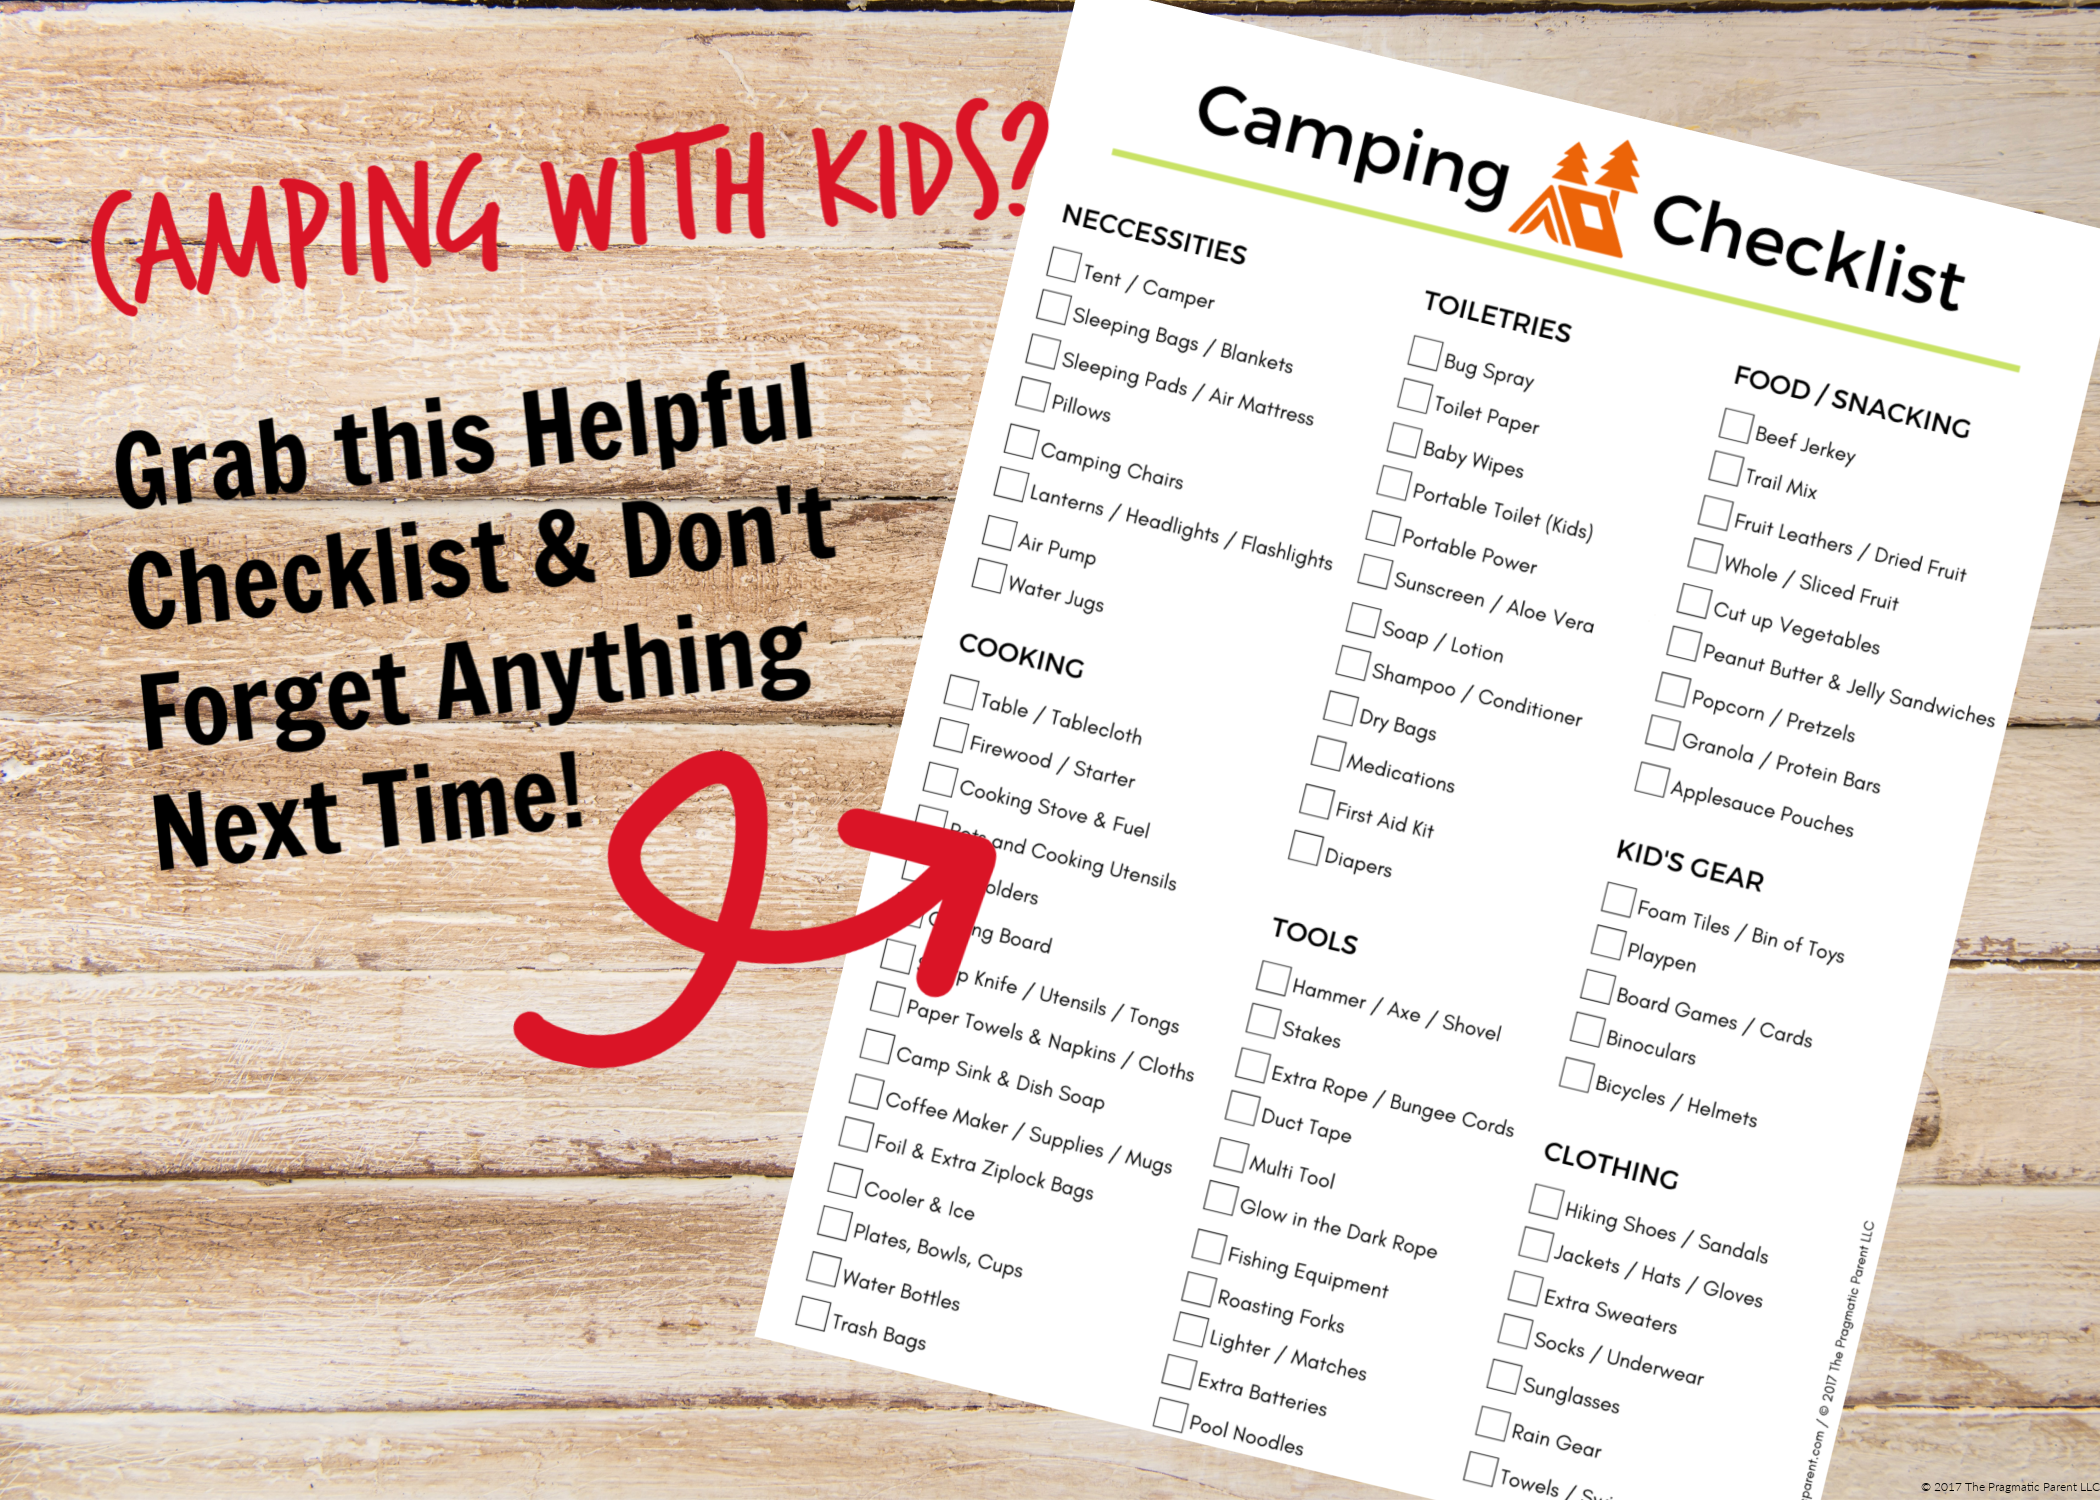 Get your camping with kids printable checklist